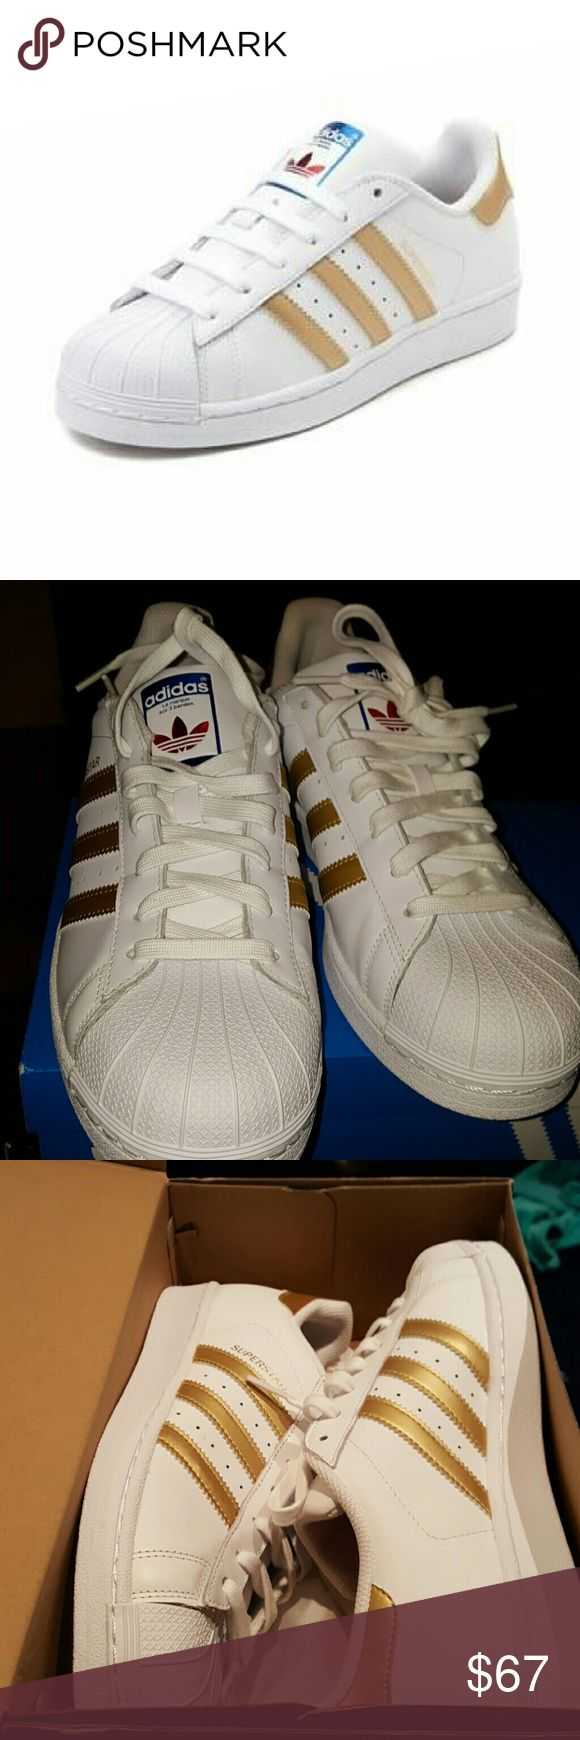 womens adidas superstar athletic shoe get on the fast track to fabulous with the timeless look